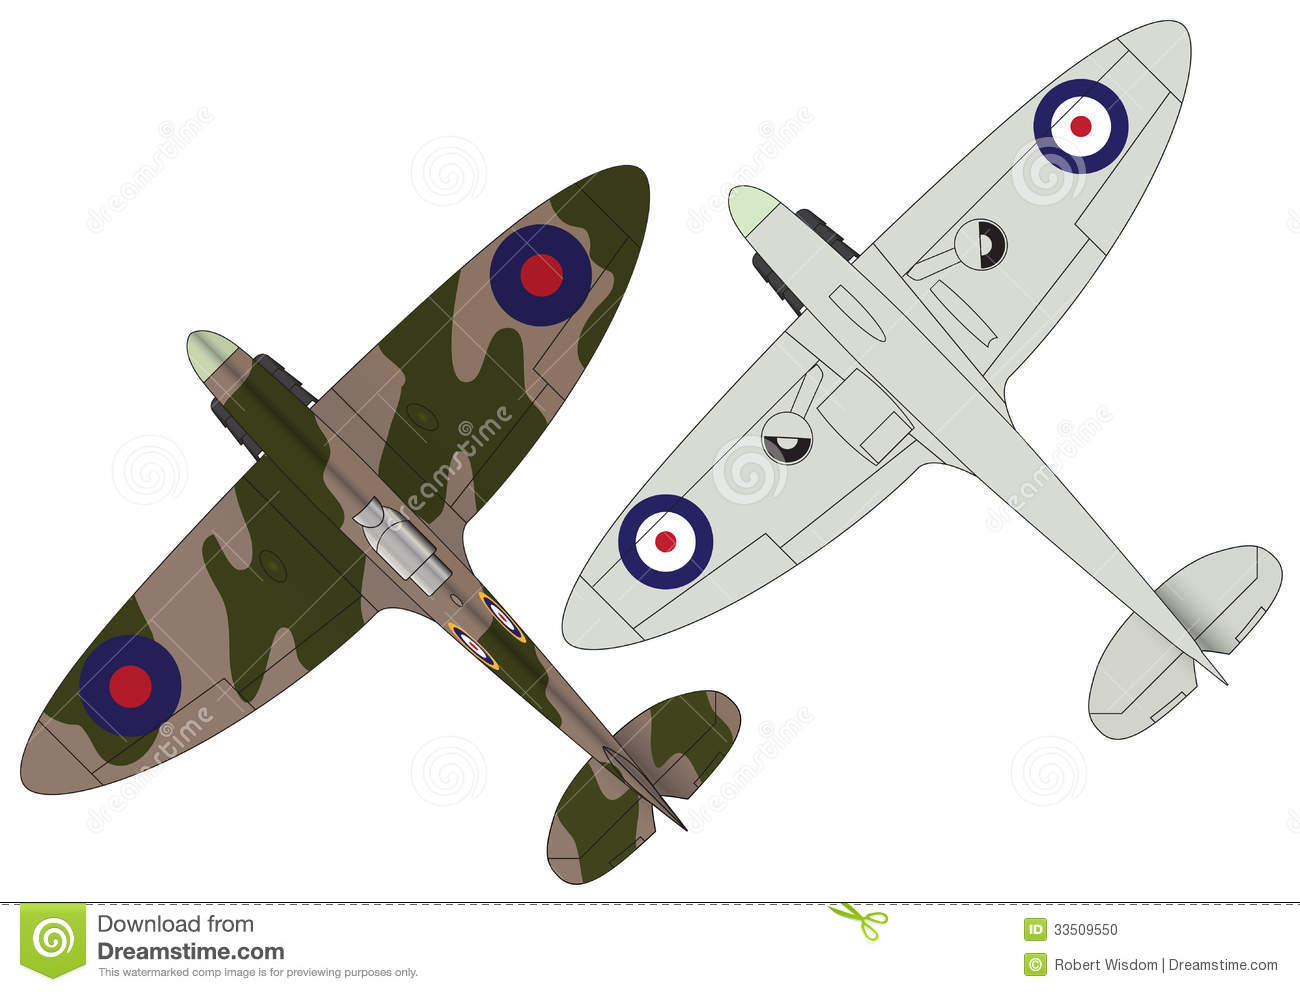 Two flat illustrations of wwii spitfire aircraft